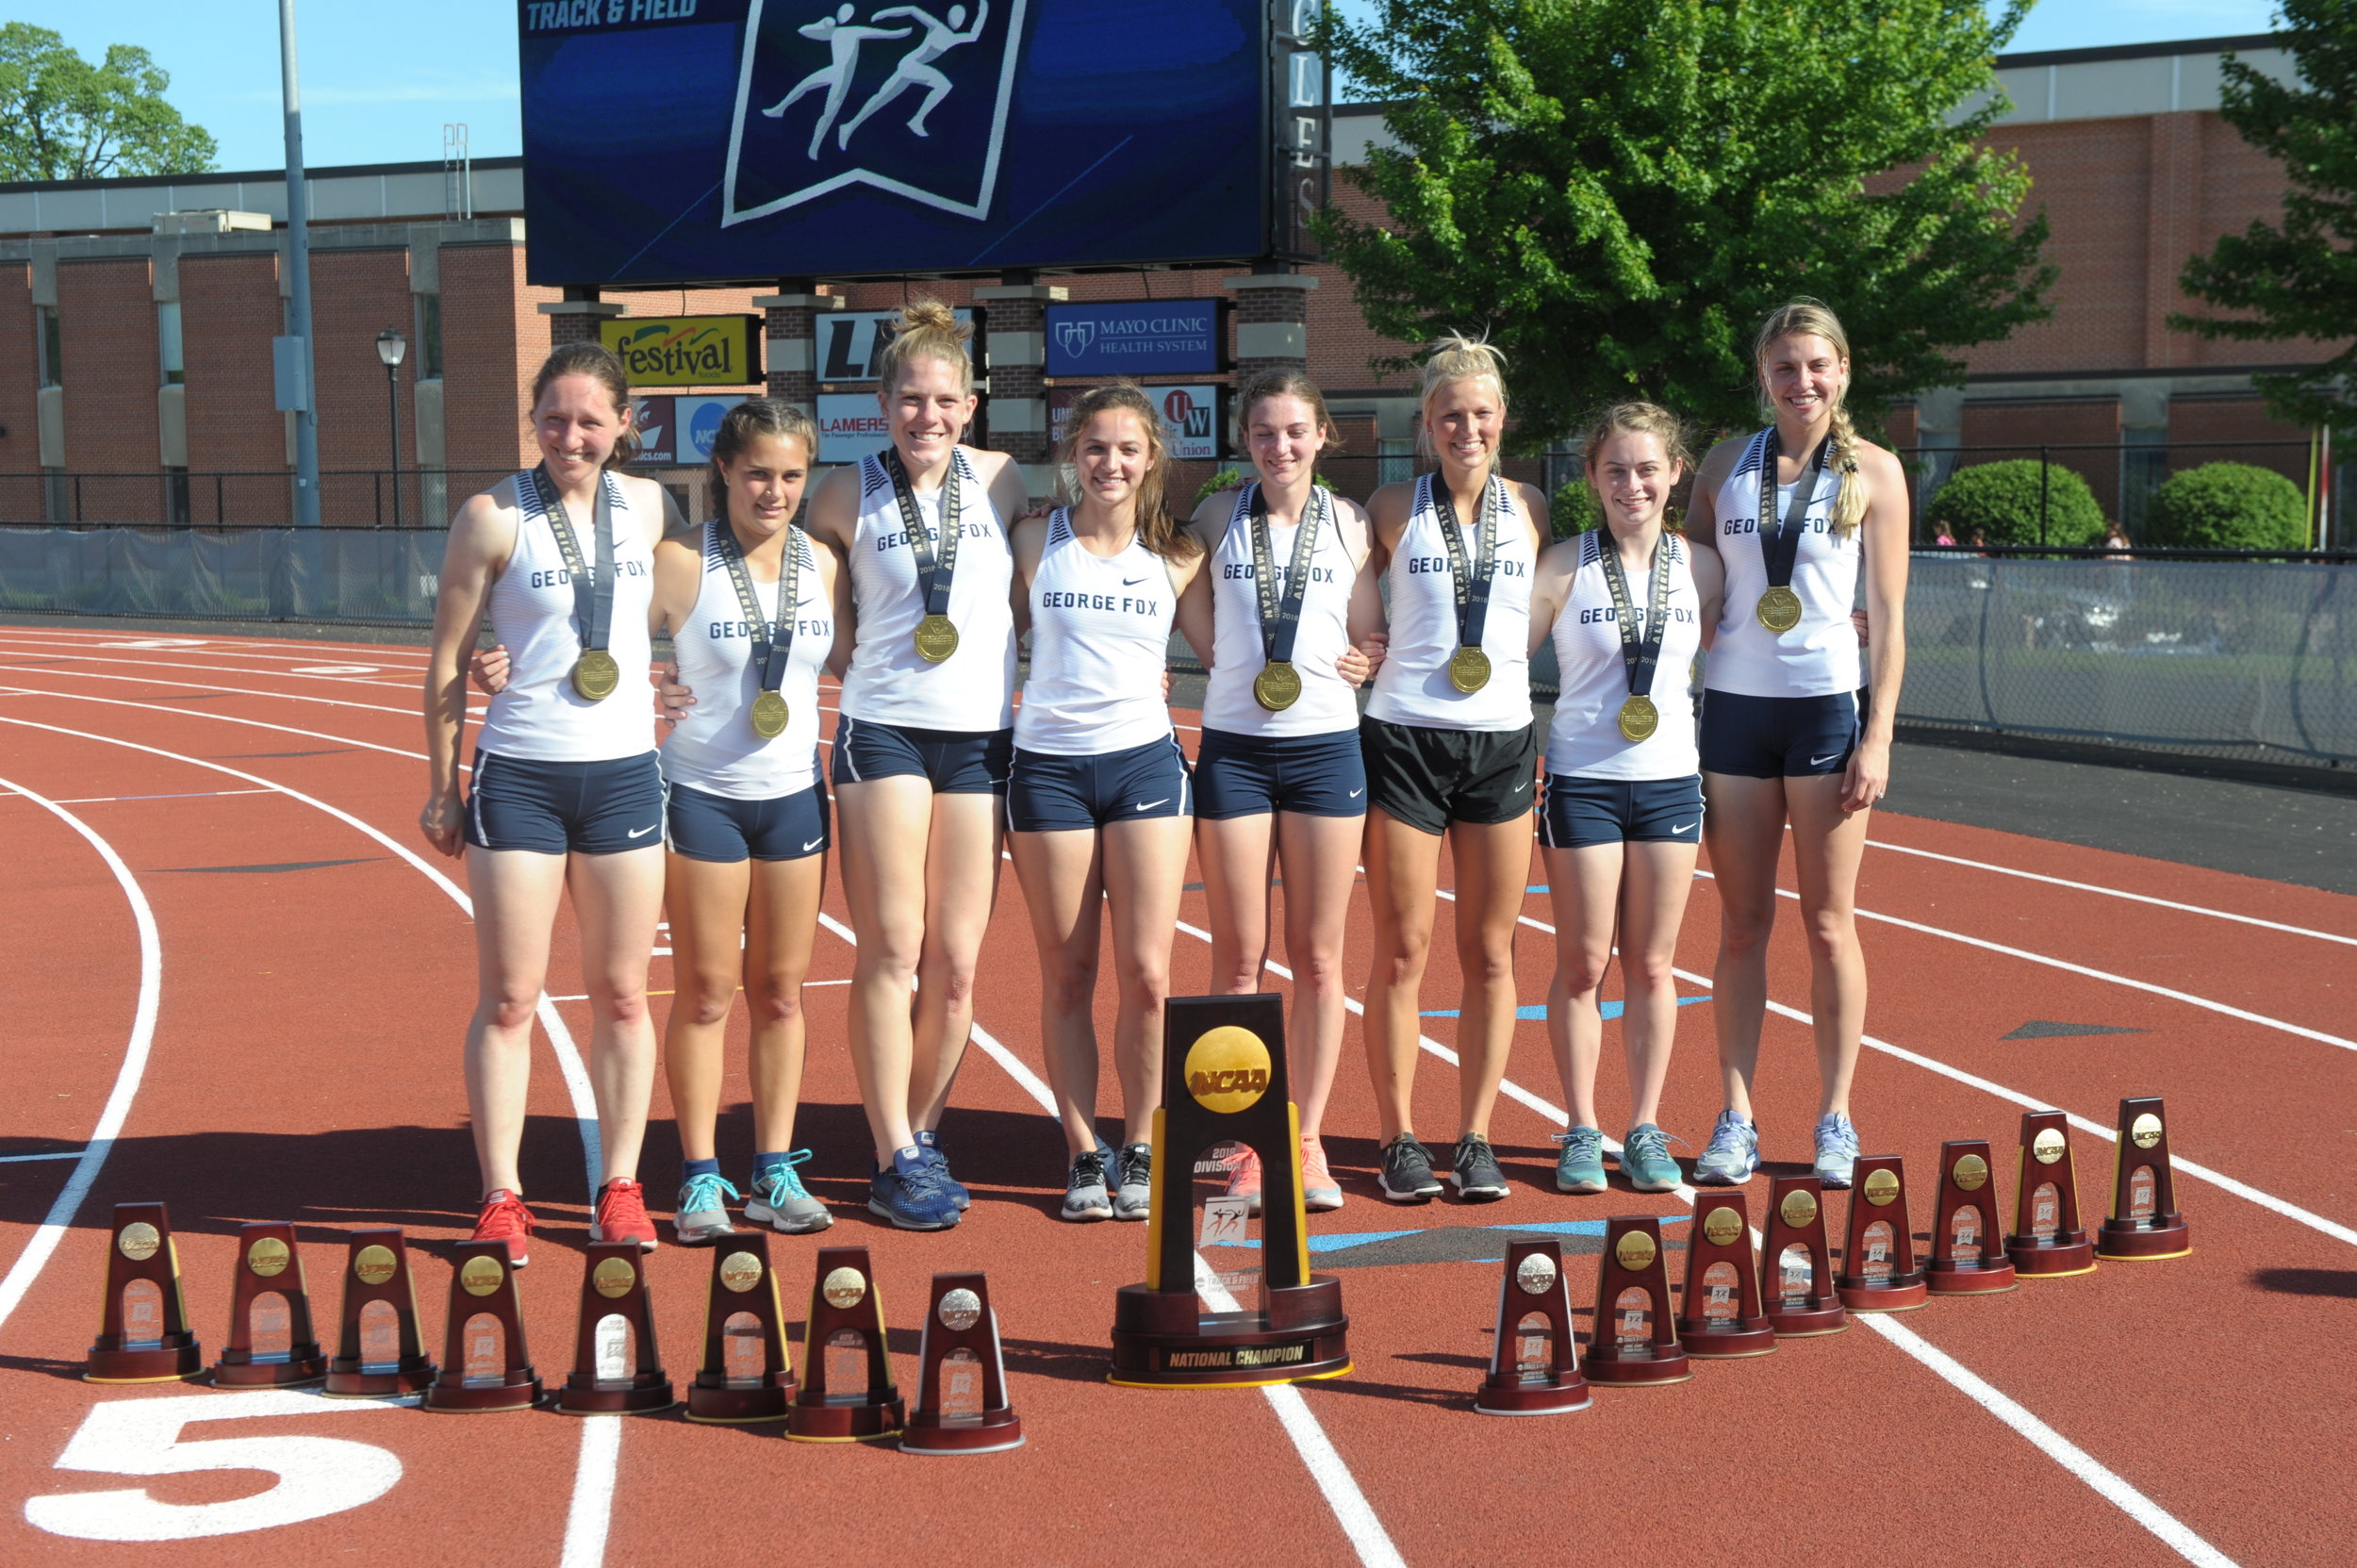 gEORGE fOX uNIVERSITY wOMEN'S tRACK AND fIELD